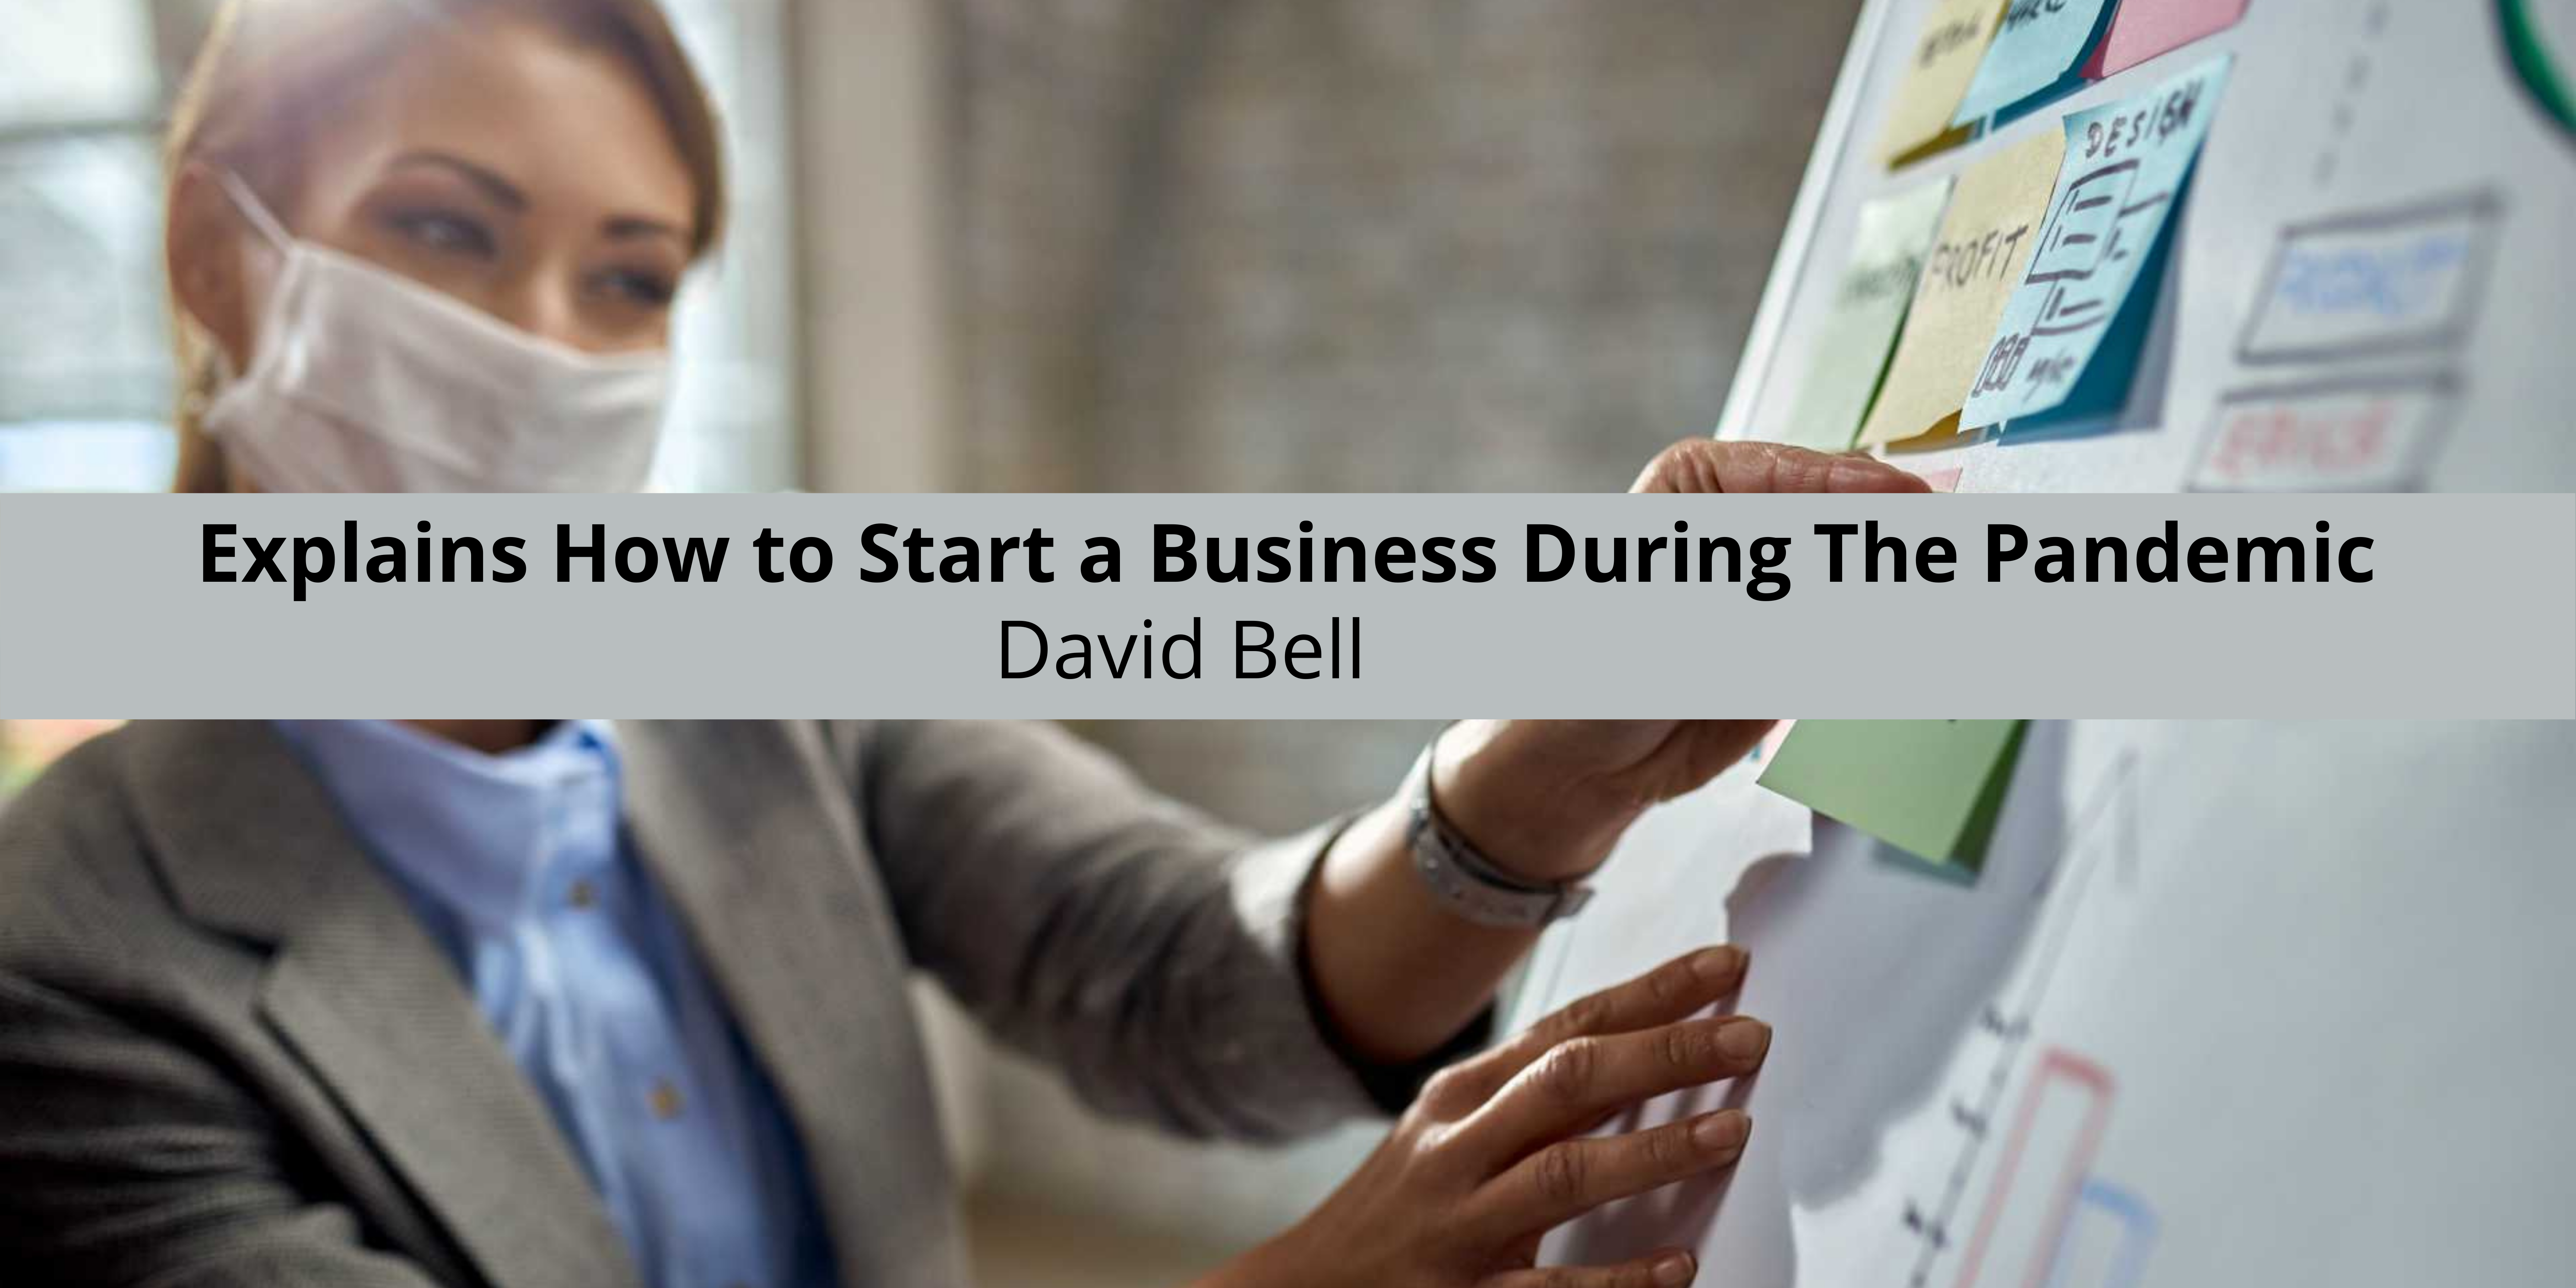 (6) David Bell former Professor of Wharton School of Business Explains How to Start a Business During The Pandemic